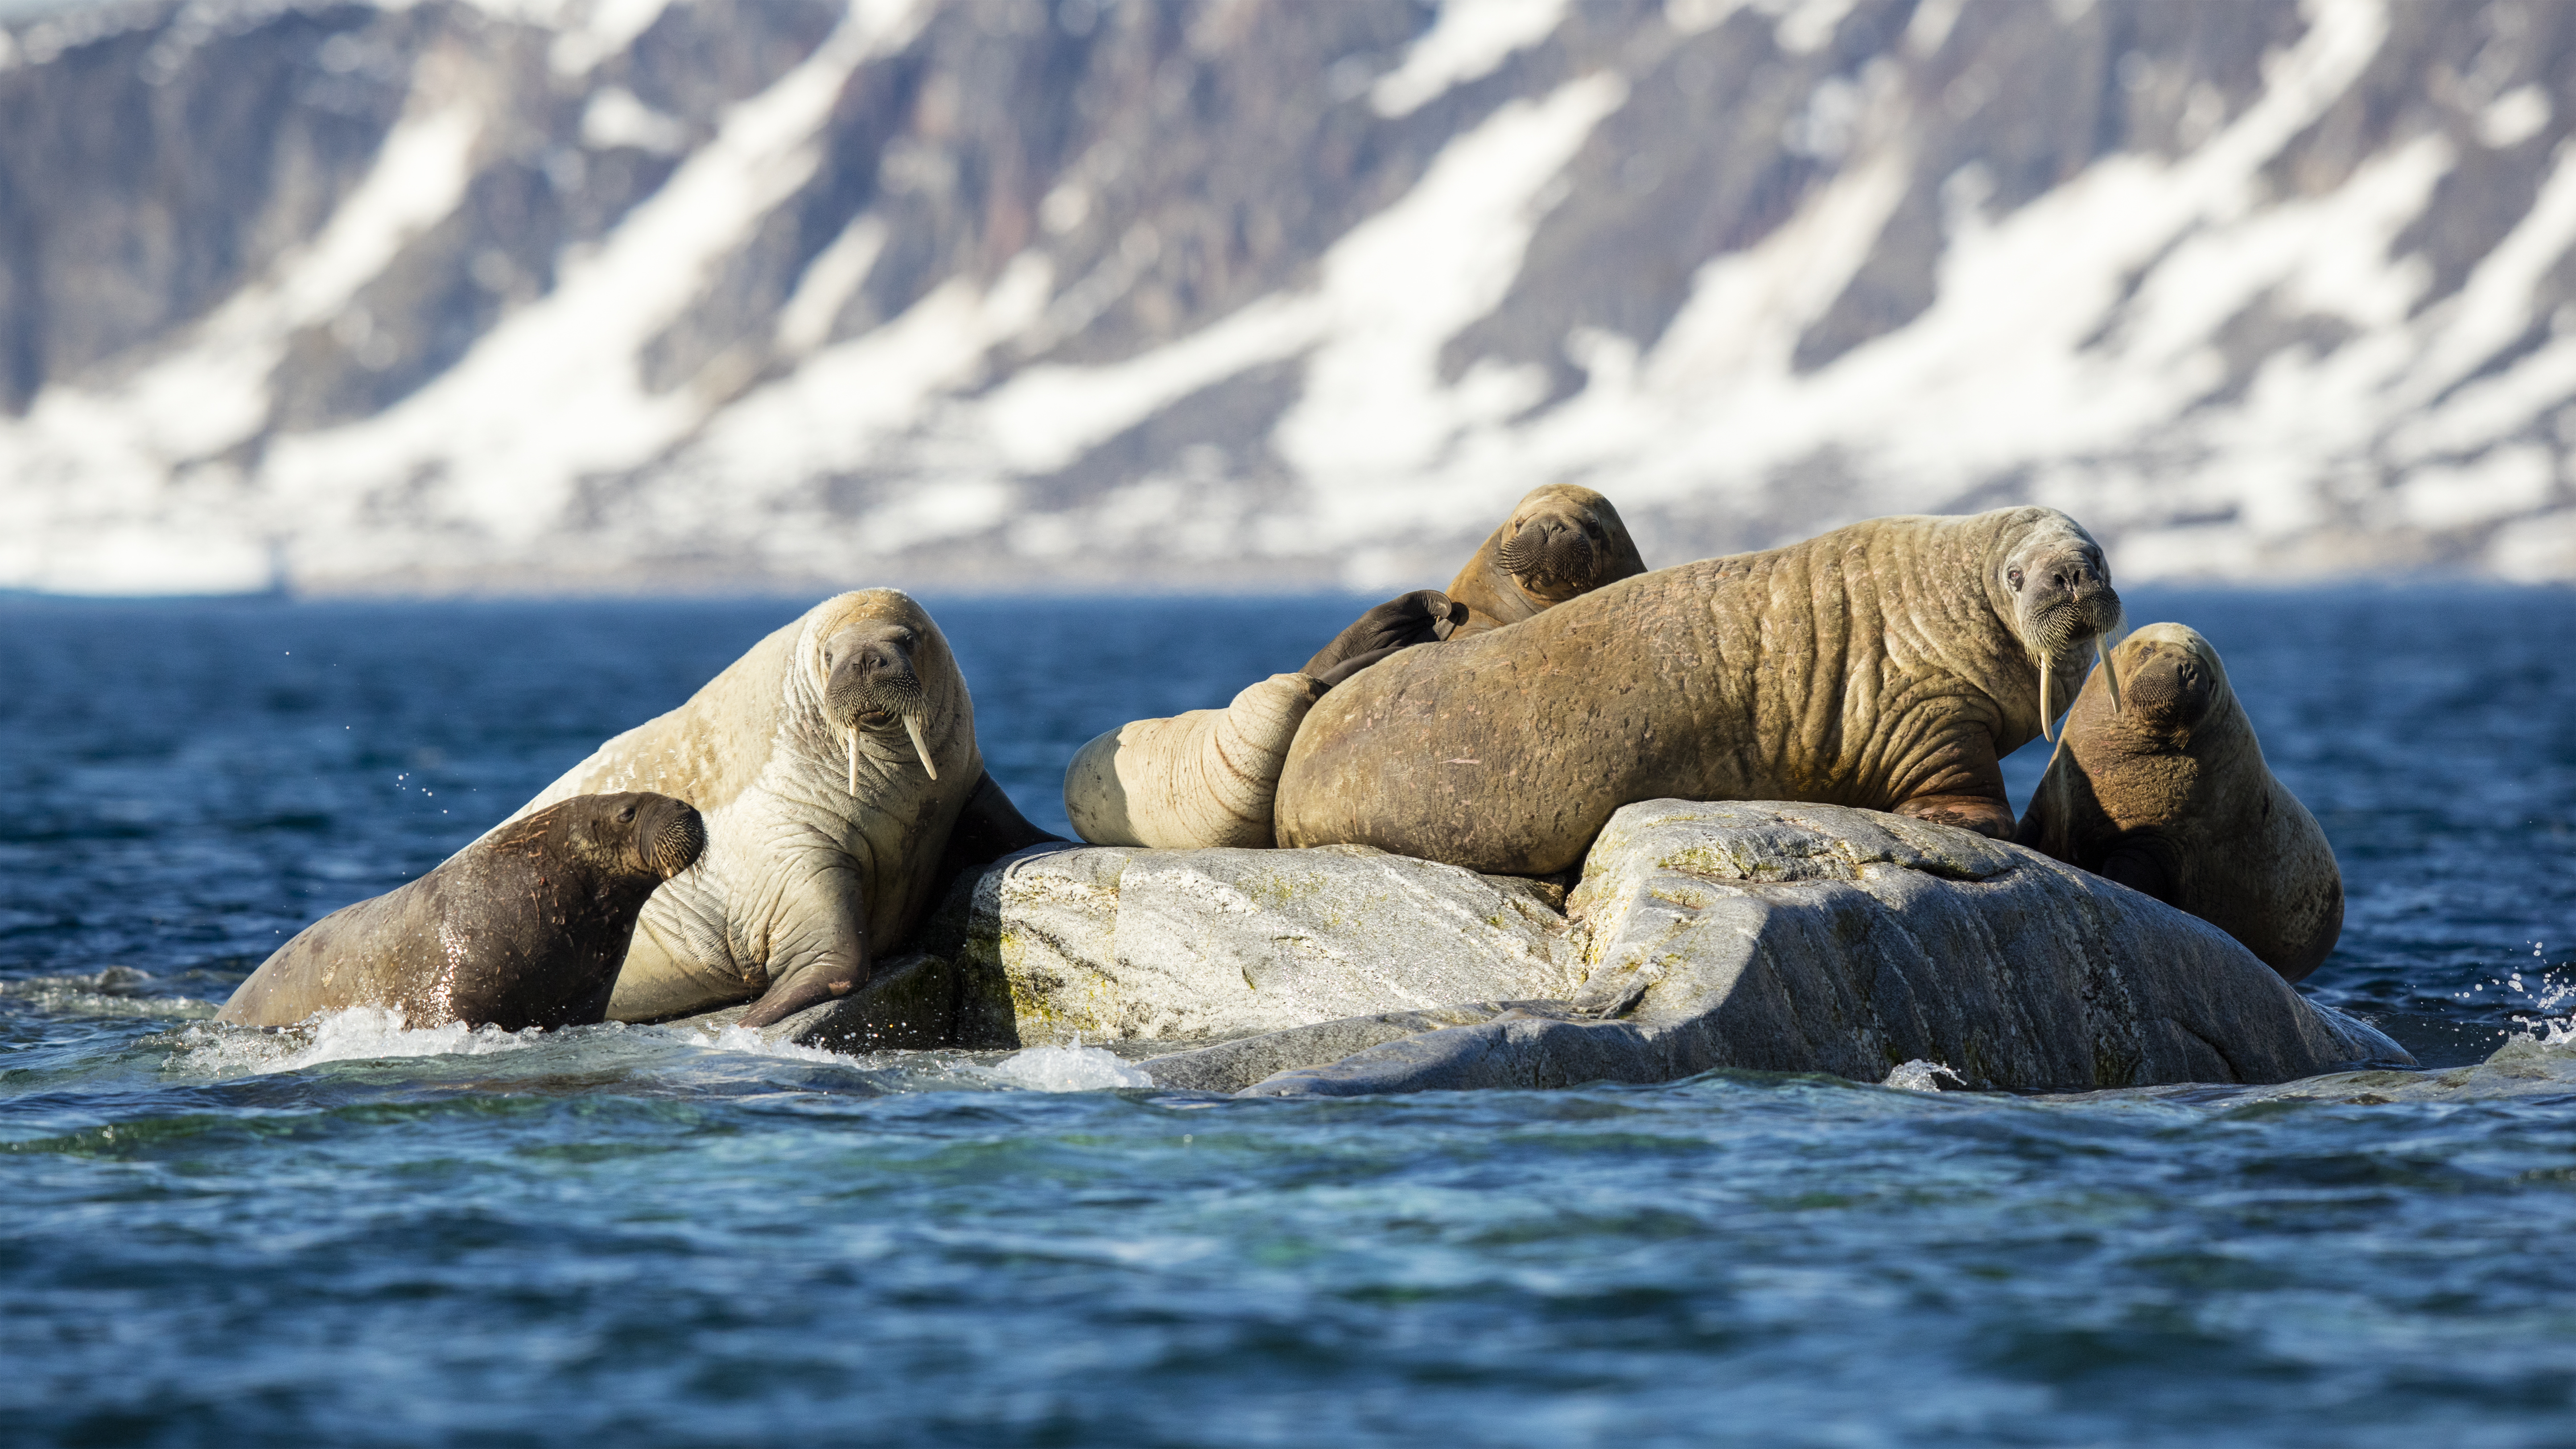 One Cool Thing: Where's Walrus?